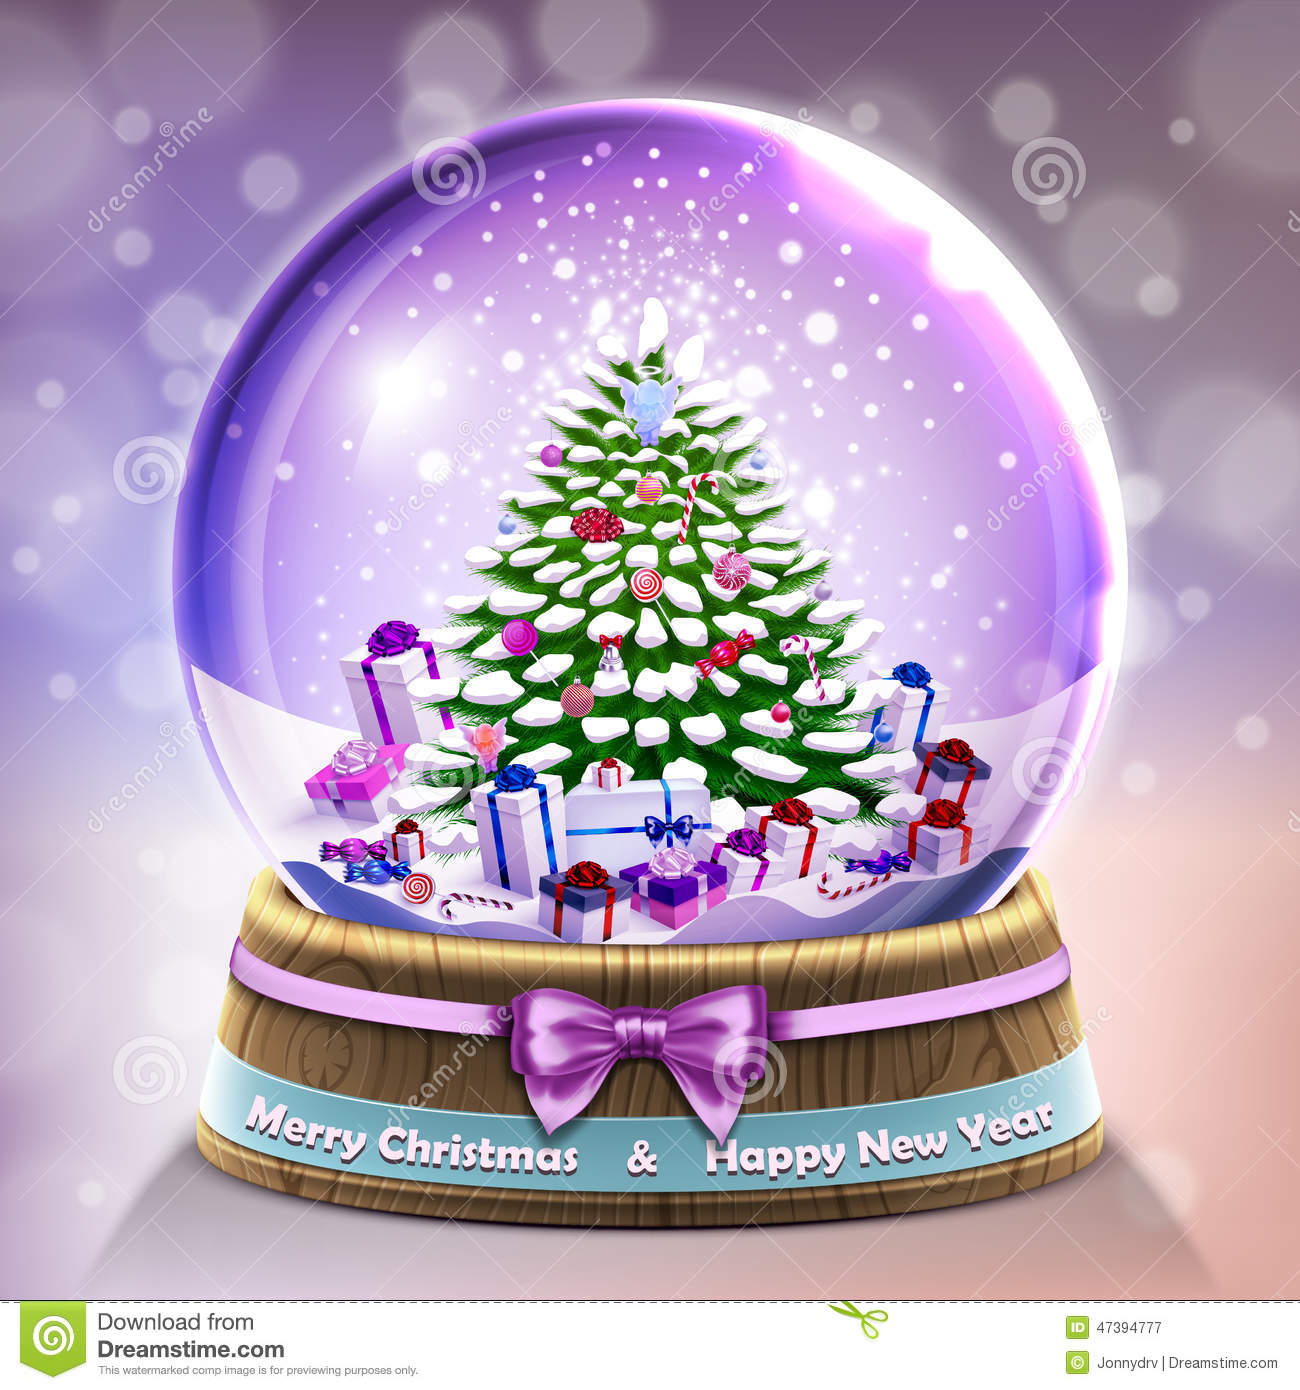 Snow glass crystal ball with christmas tree and gifts card